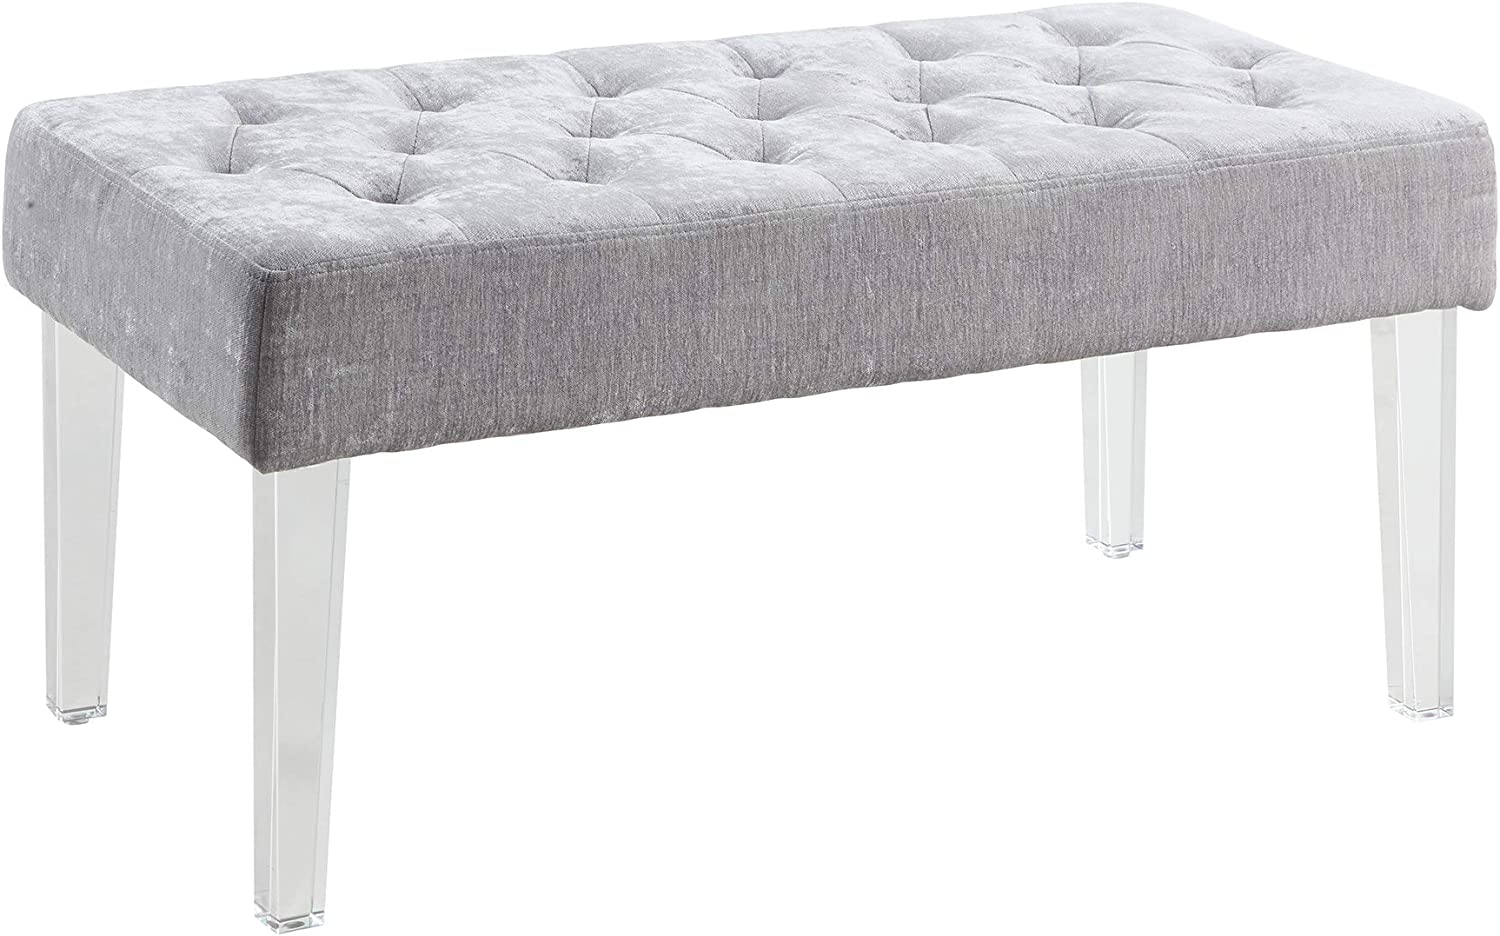 Benjara Tufted Fabric Upholstered Bench with Acrylic Legs, Gray and Clear